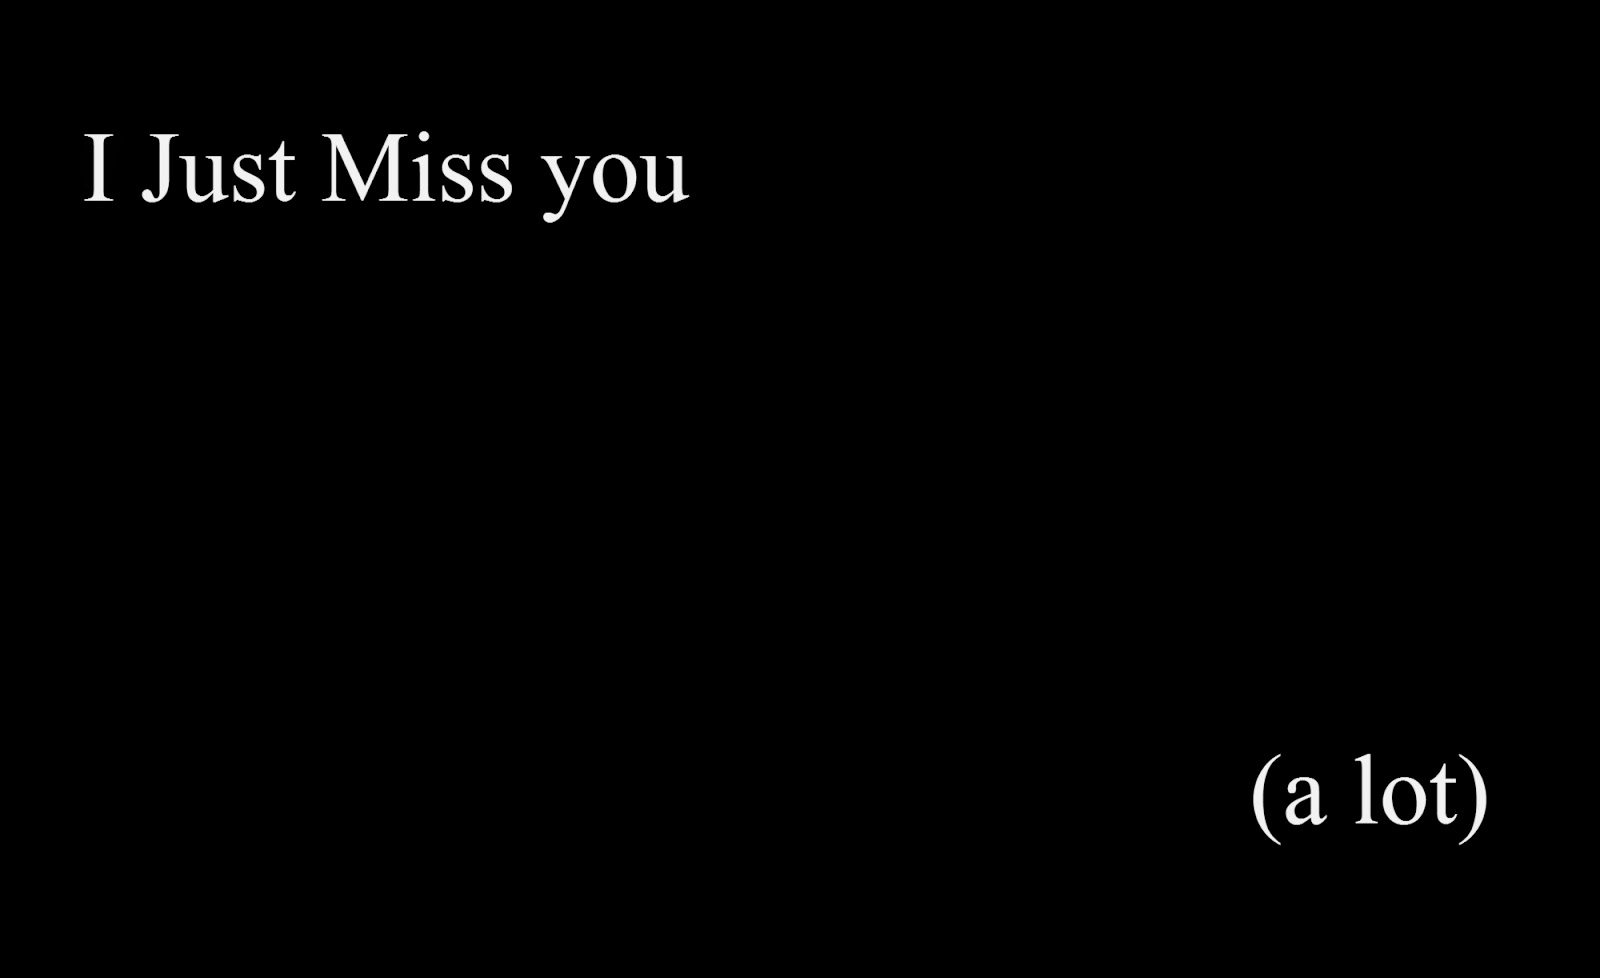 I just Miss you a lot